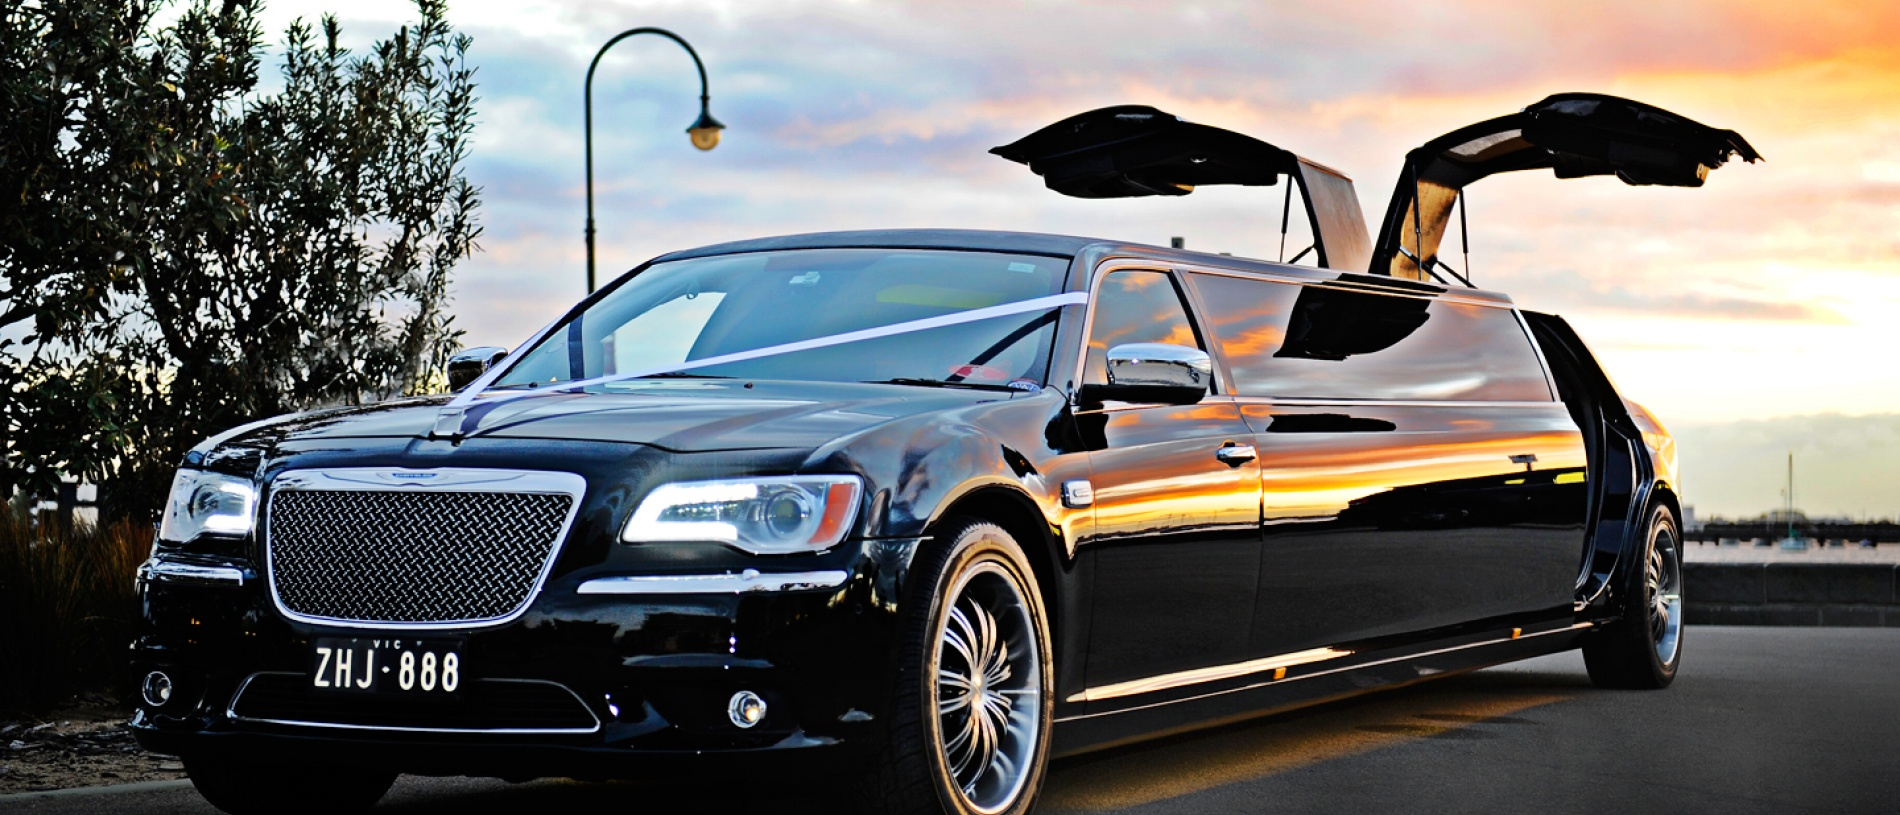 Dark Angel 10 Seater Black Chrysler Limo Hire Melbourne - Enrik Limousines